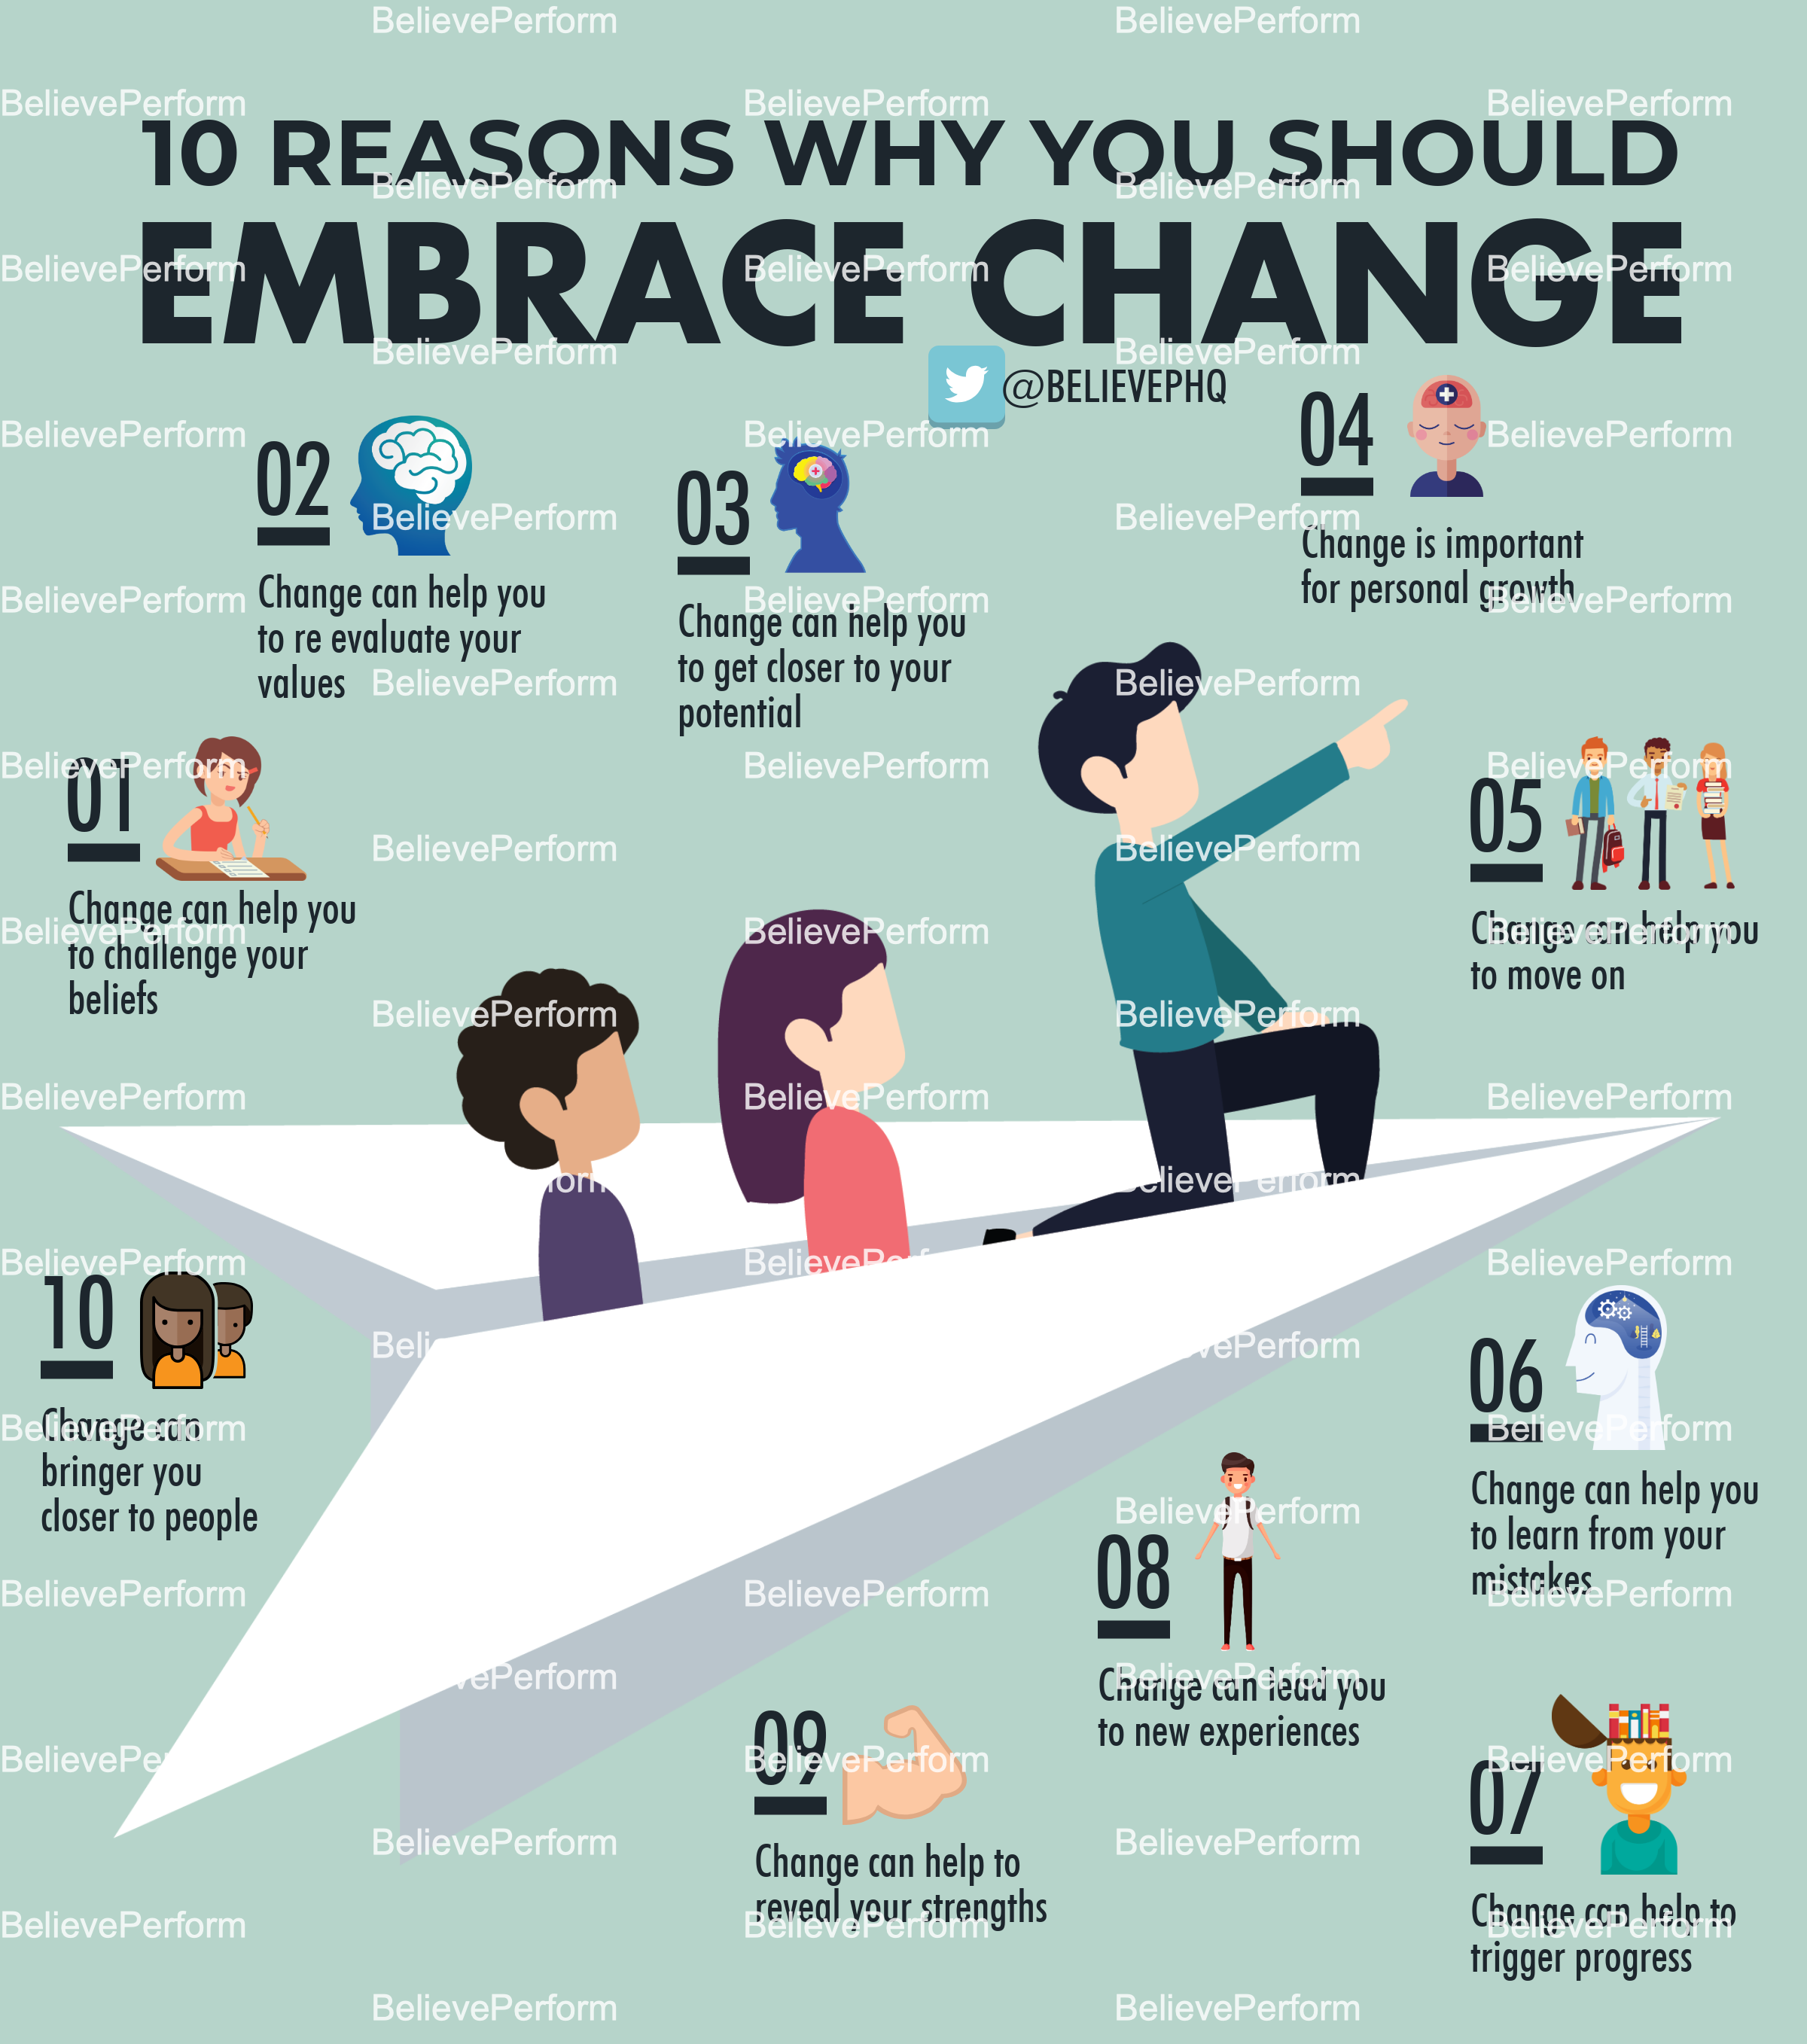 10 reasons why you should embrace change